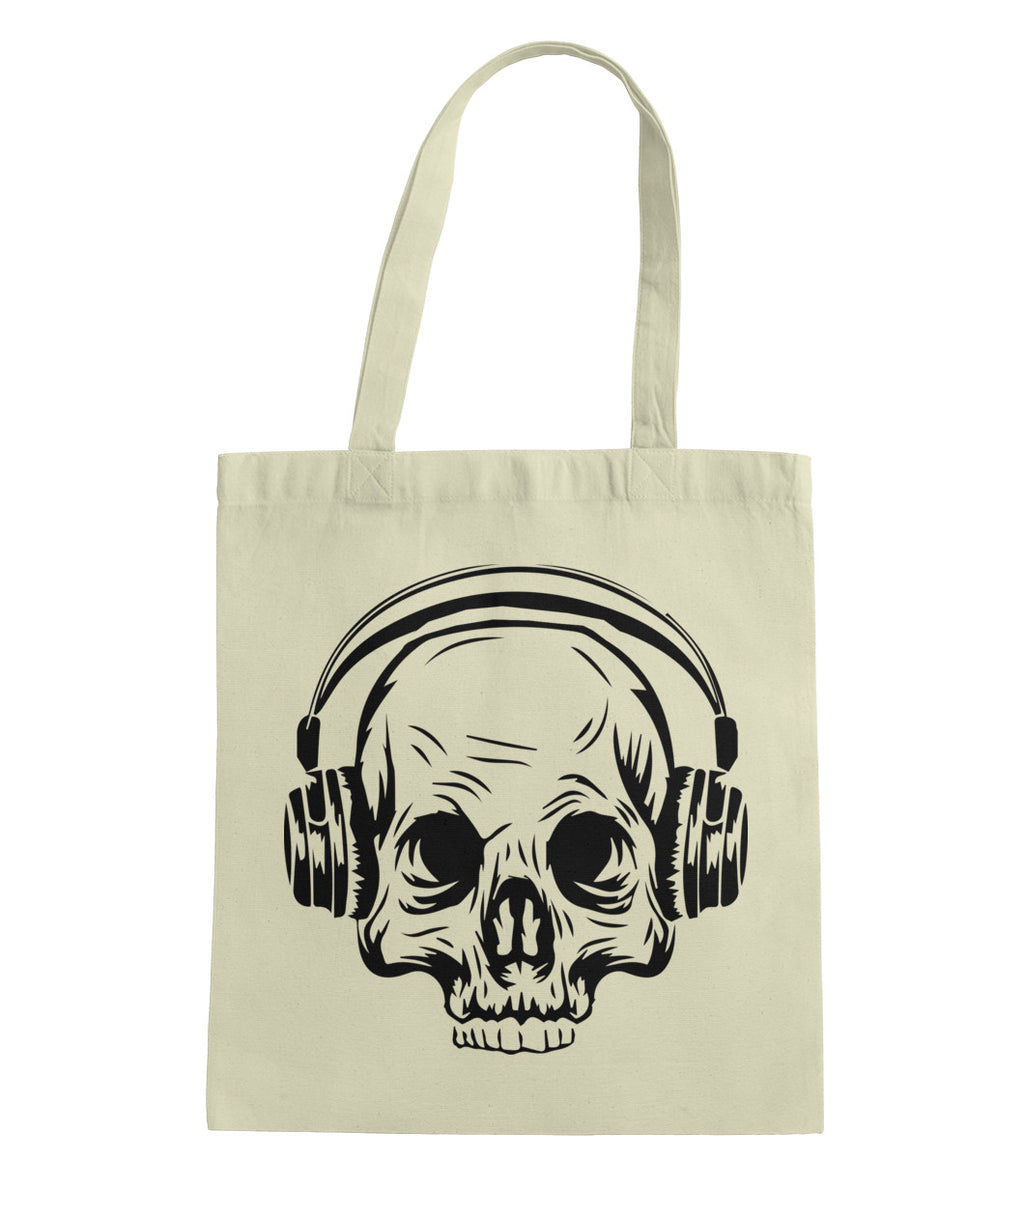 Skull and Headphones Tote Bag